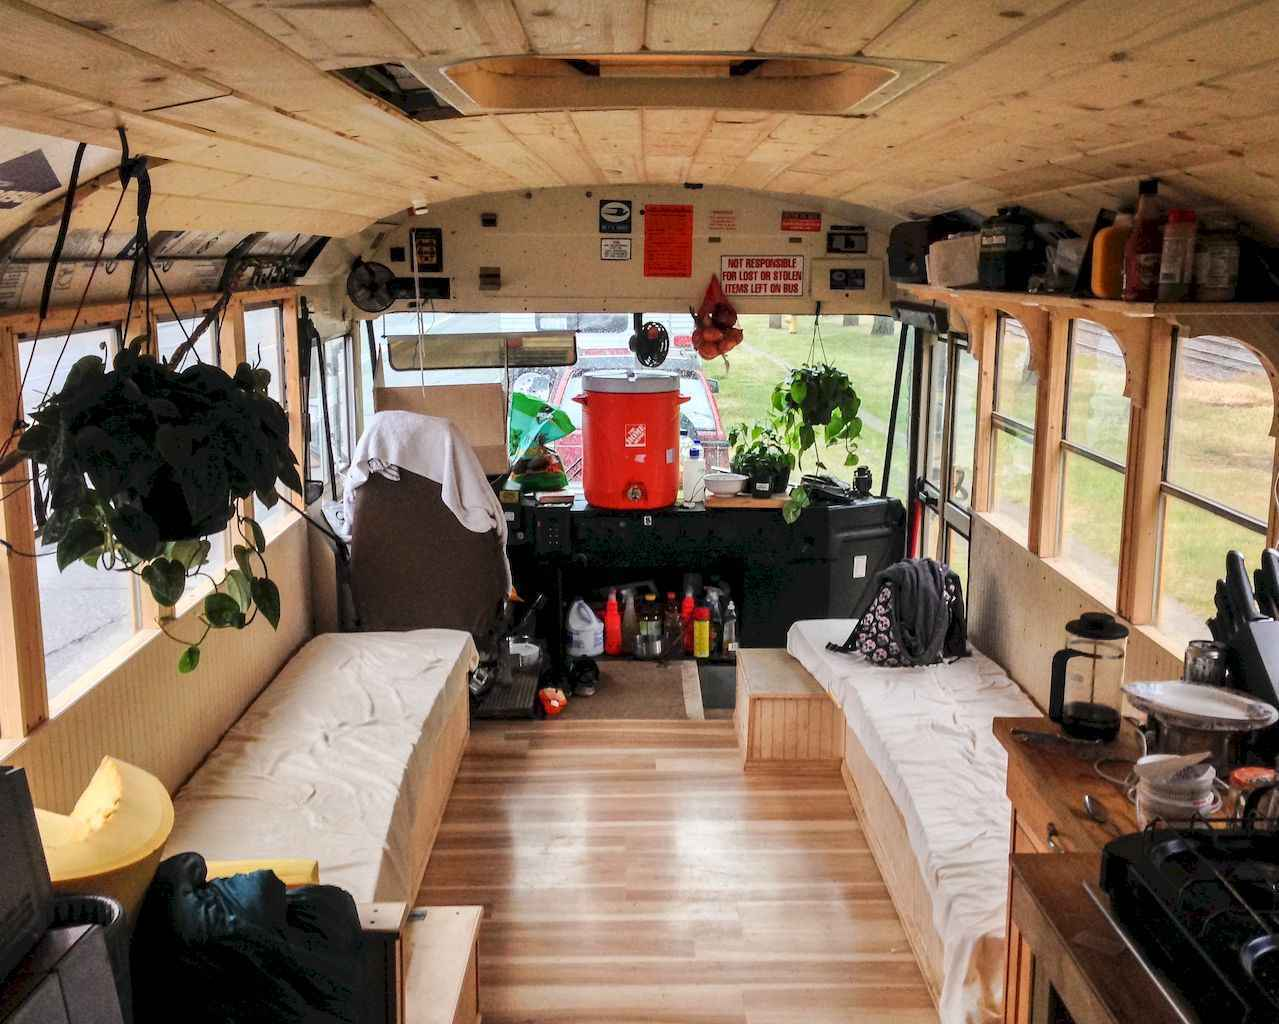 20 wild and wonderful school bus camper interior and plans ideas to